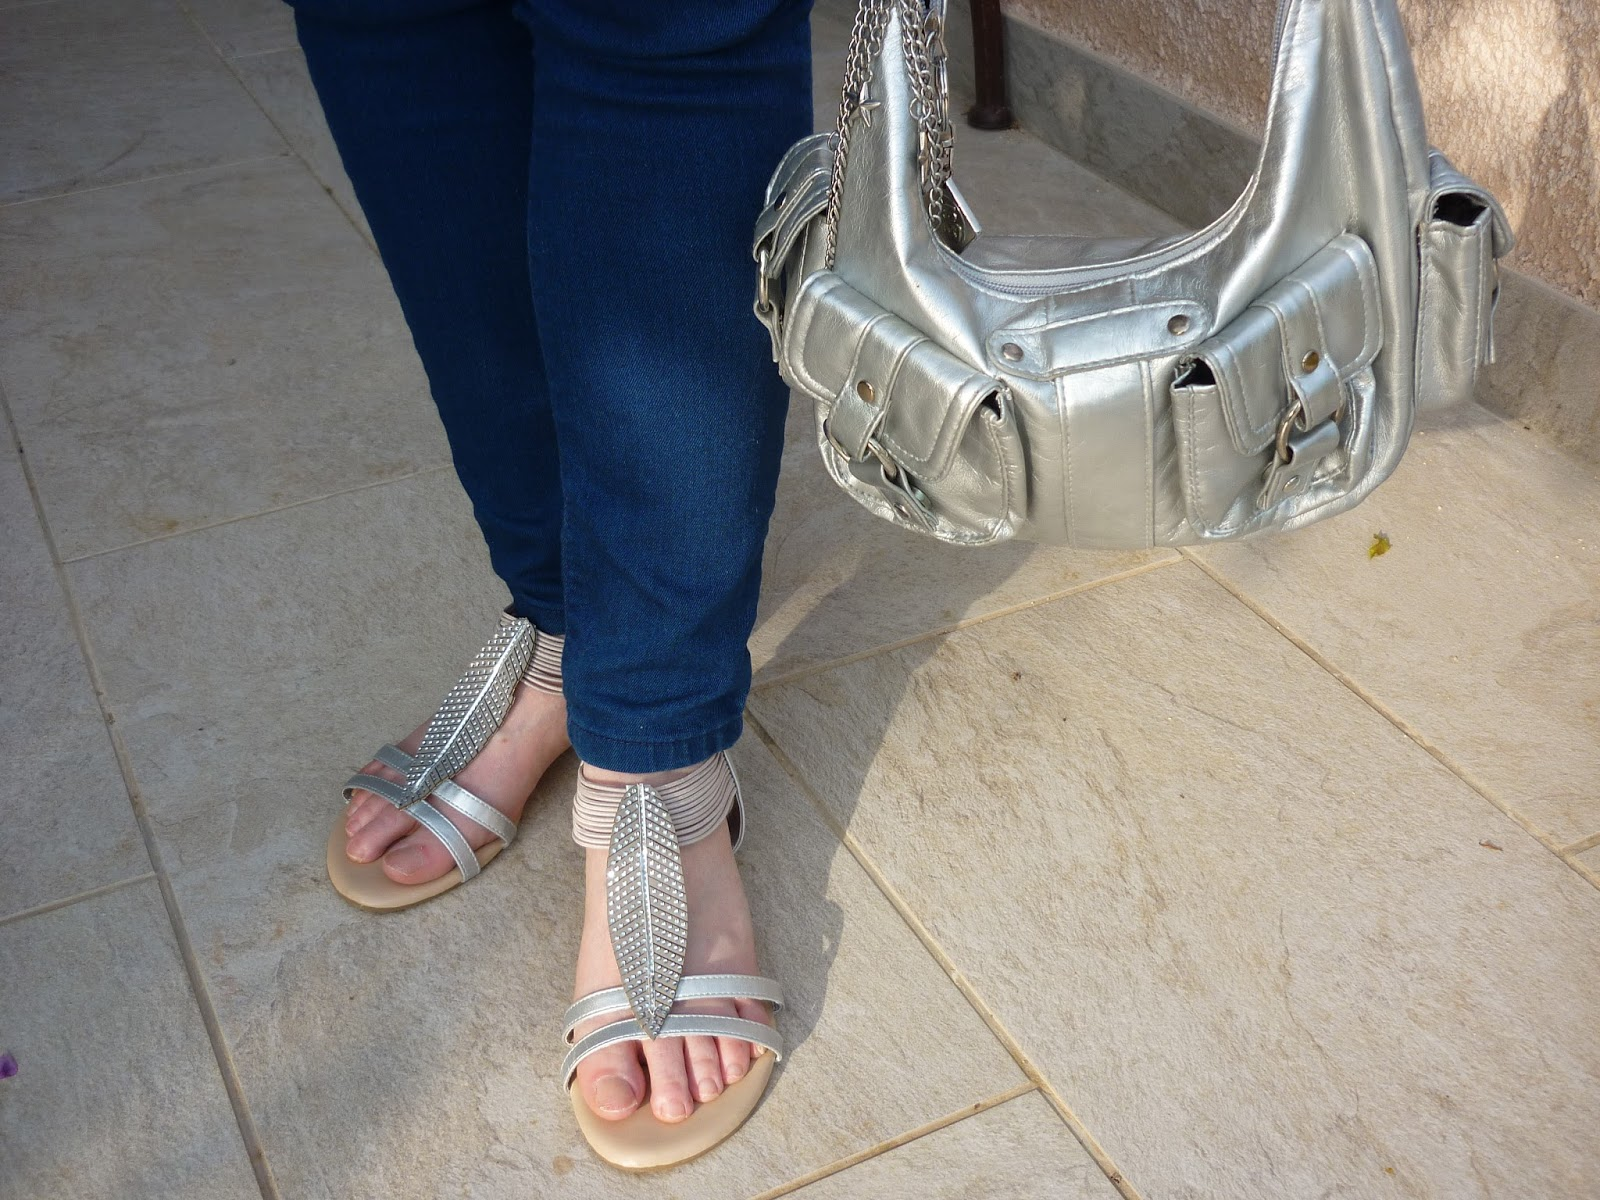 Front view of Silver Leaf Sandals and Silver Bag